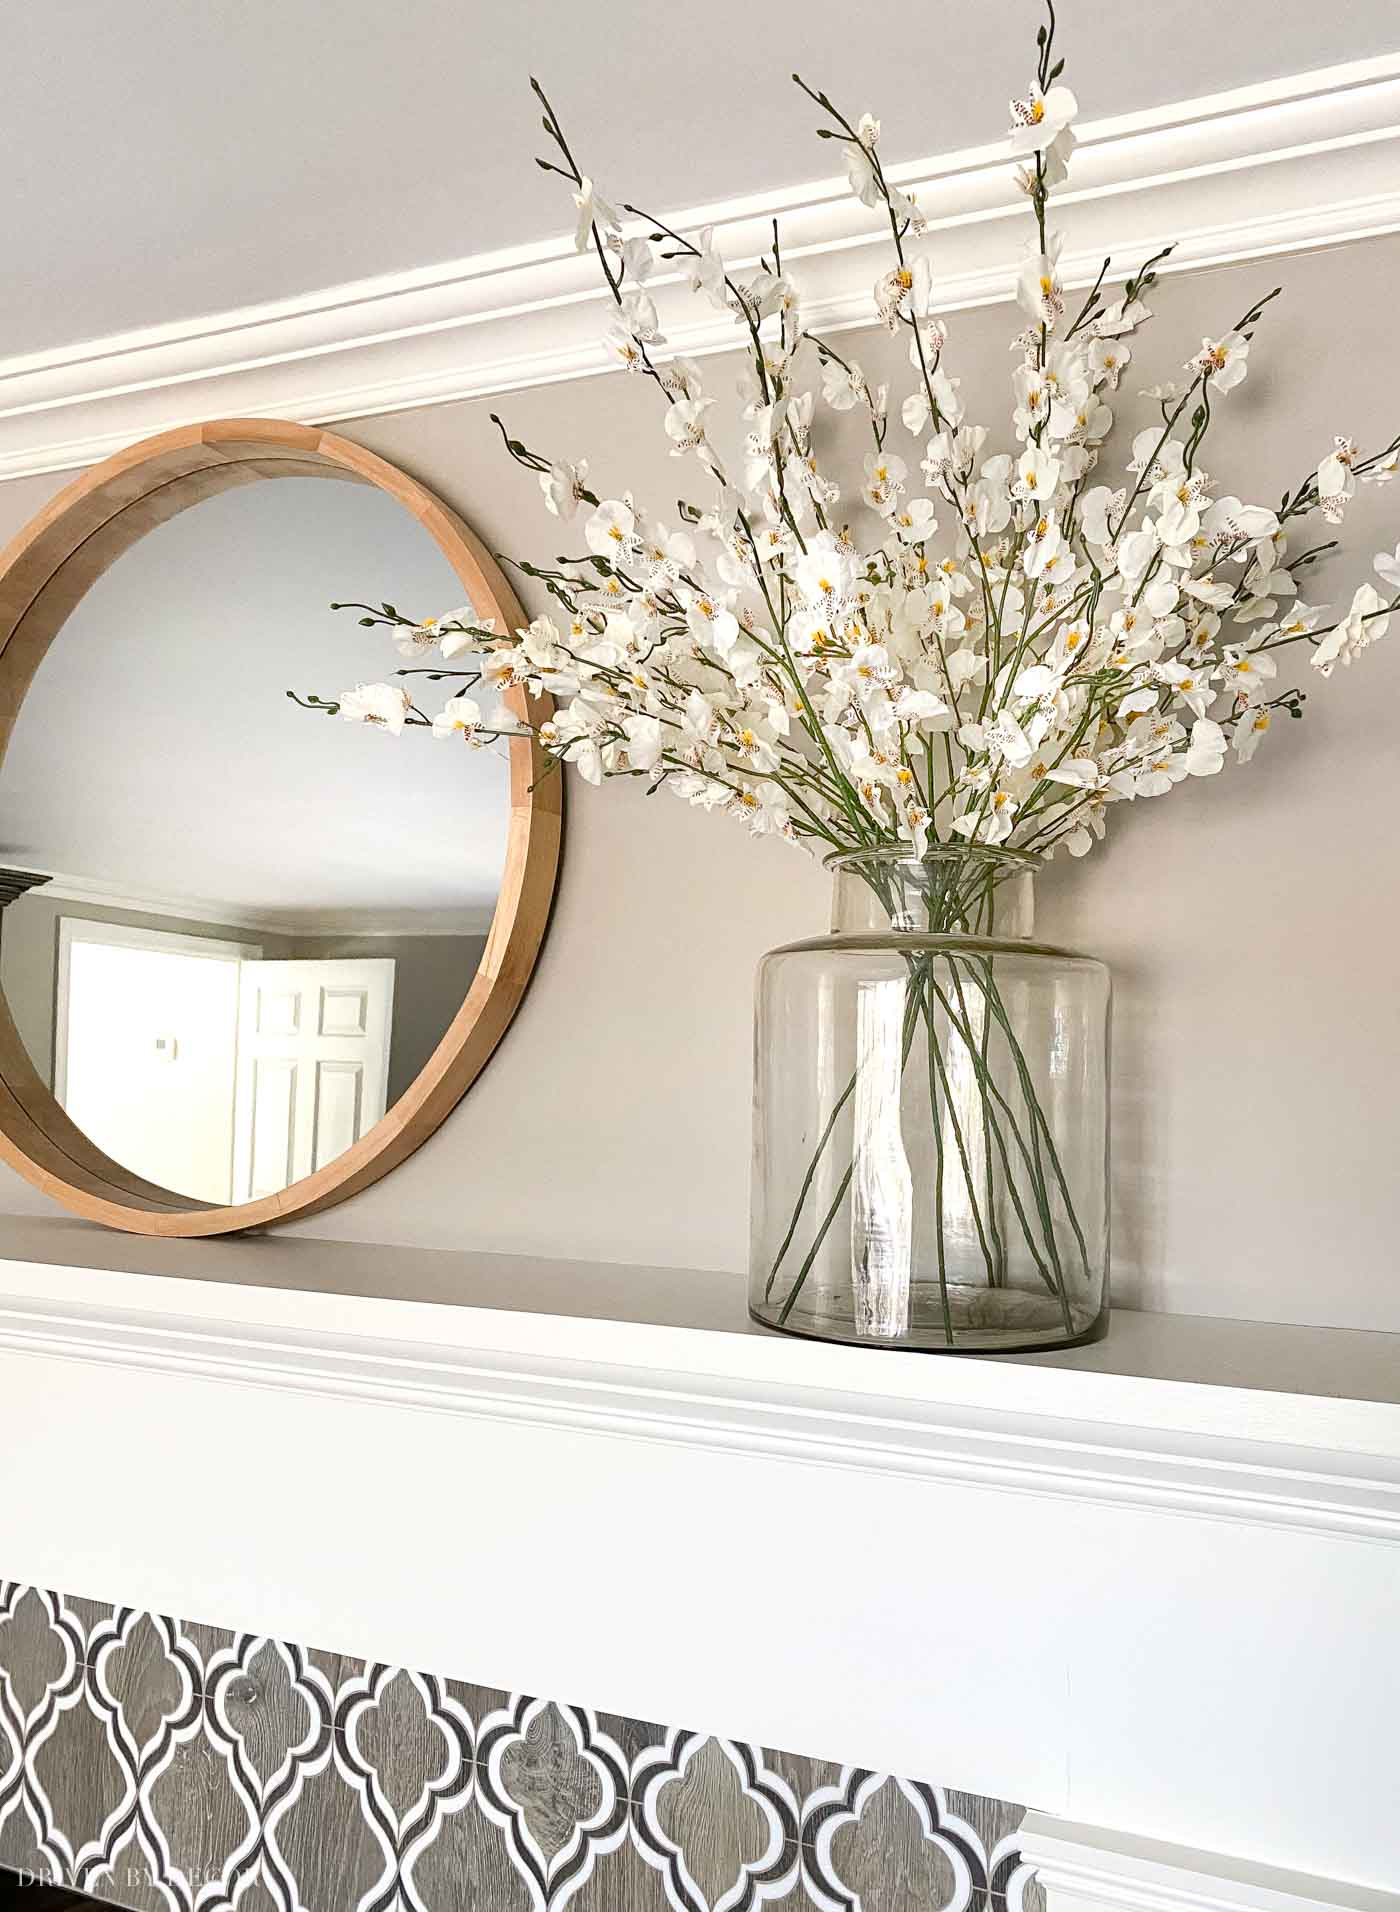 Love having a round mirror above the fireplace to reflect light around our room!